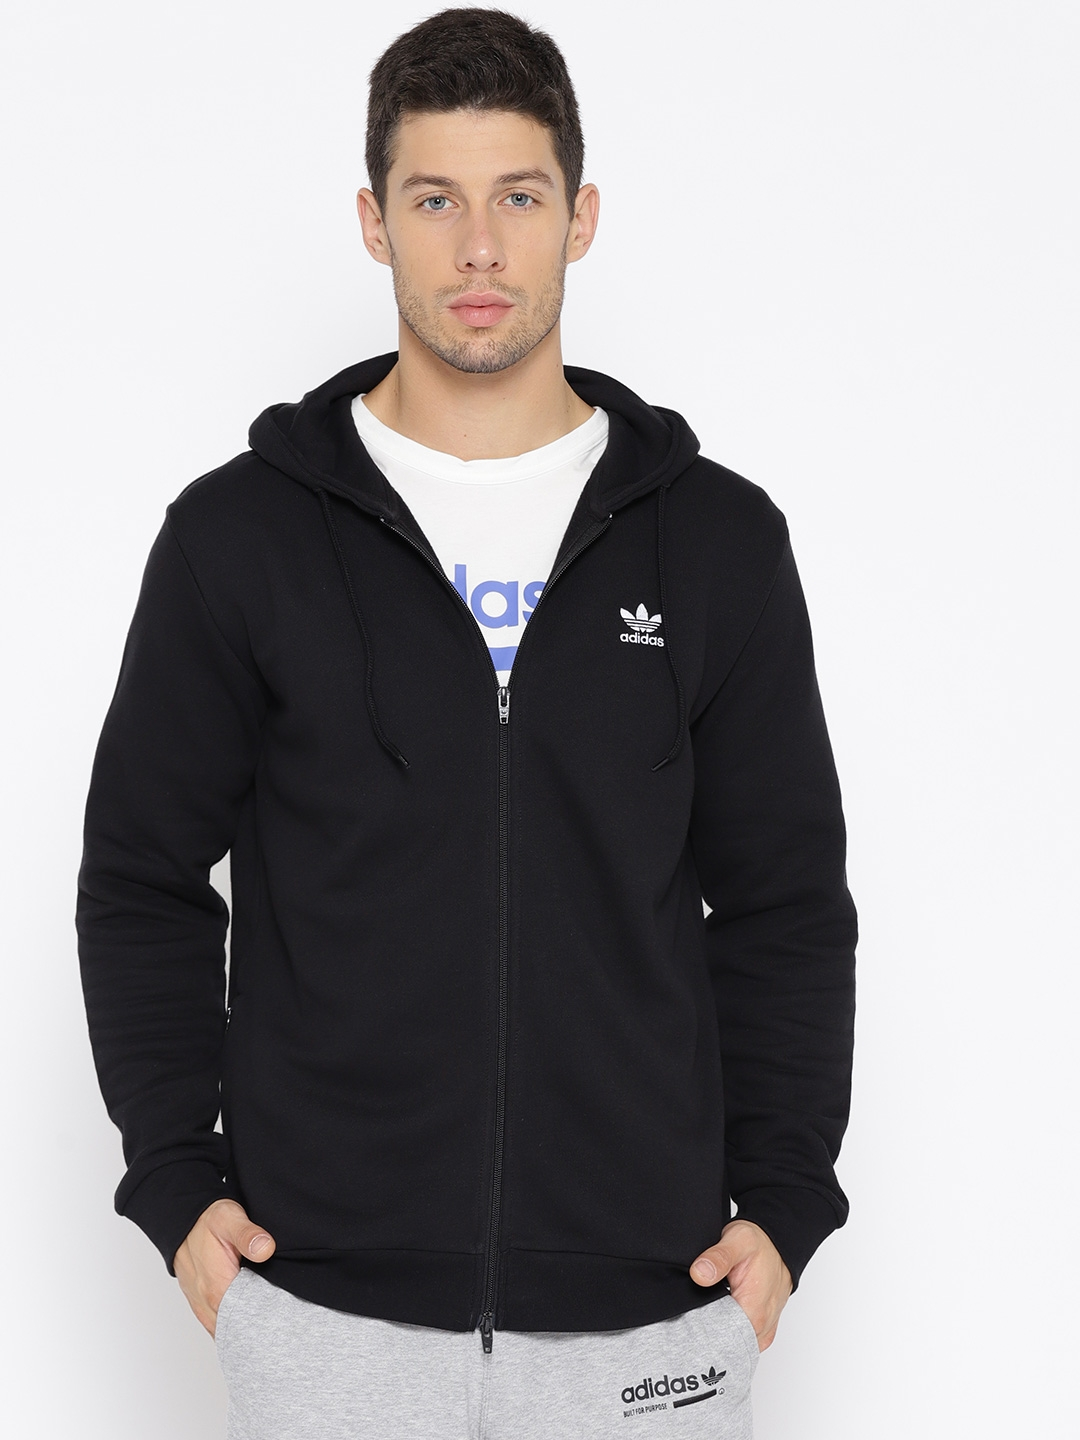 Adidas Originals Men Black Trefoil FZ Hooded Sweatshirt with Printed Back 88216264d